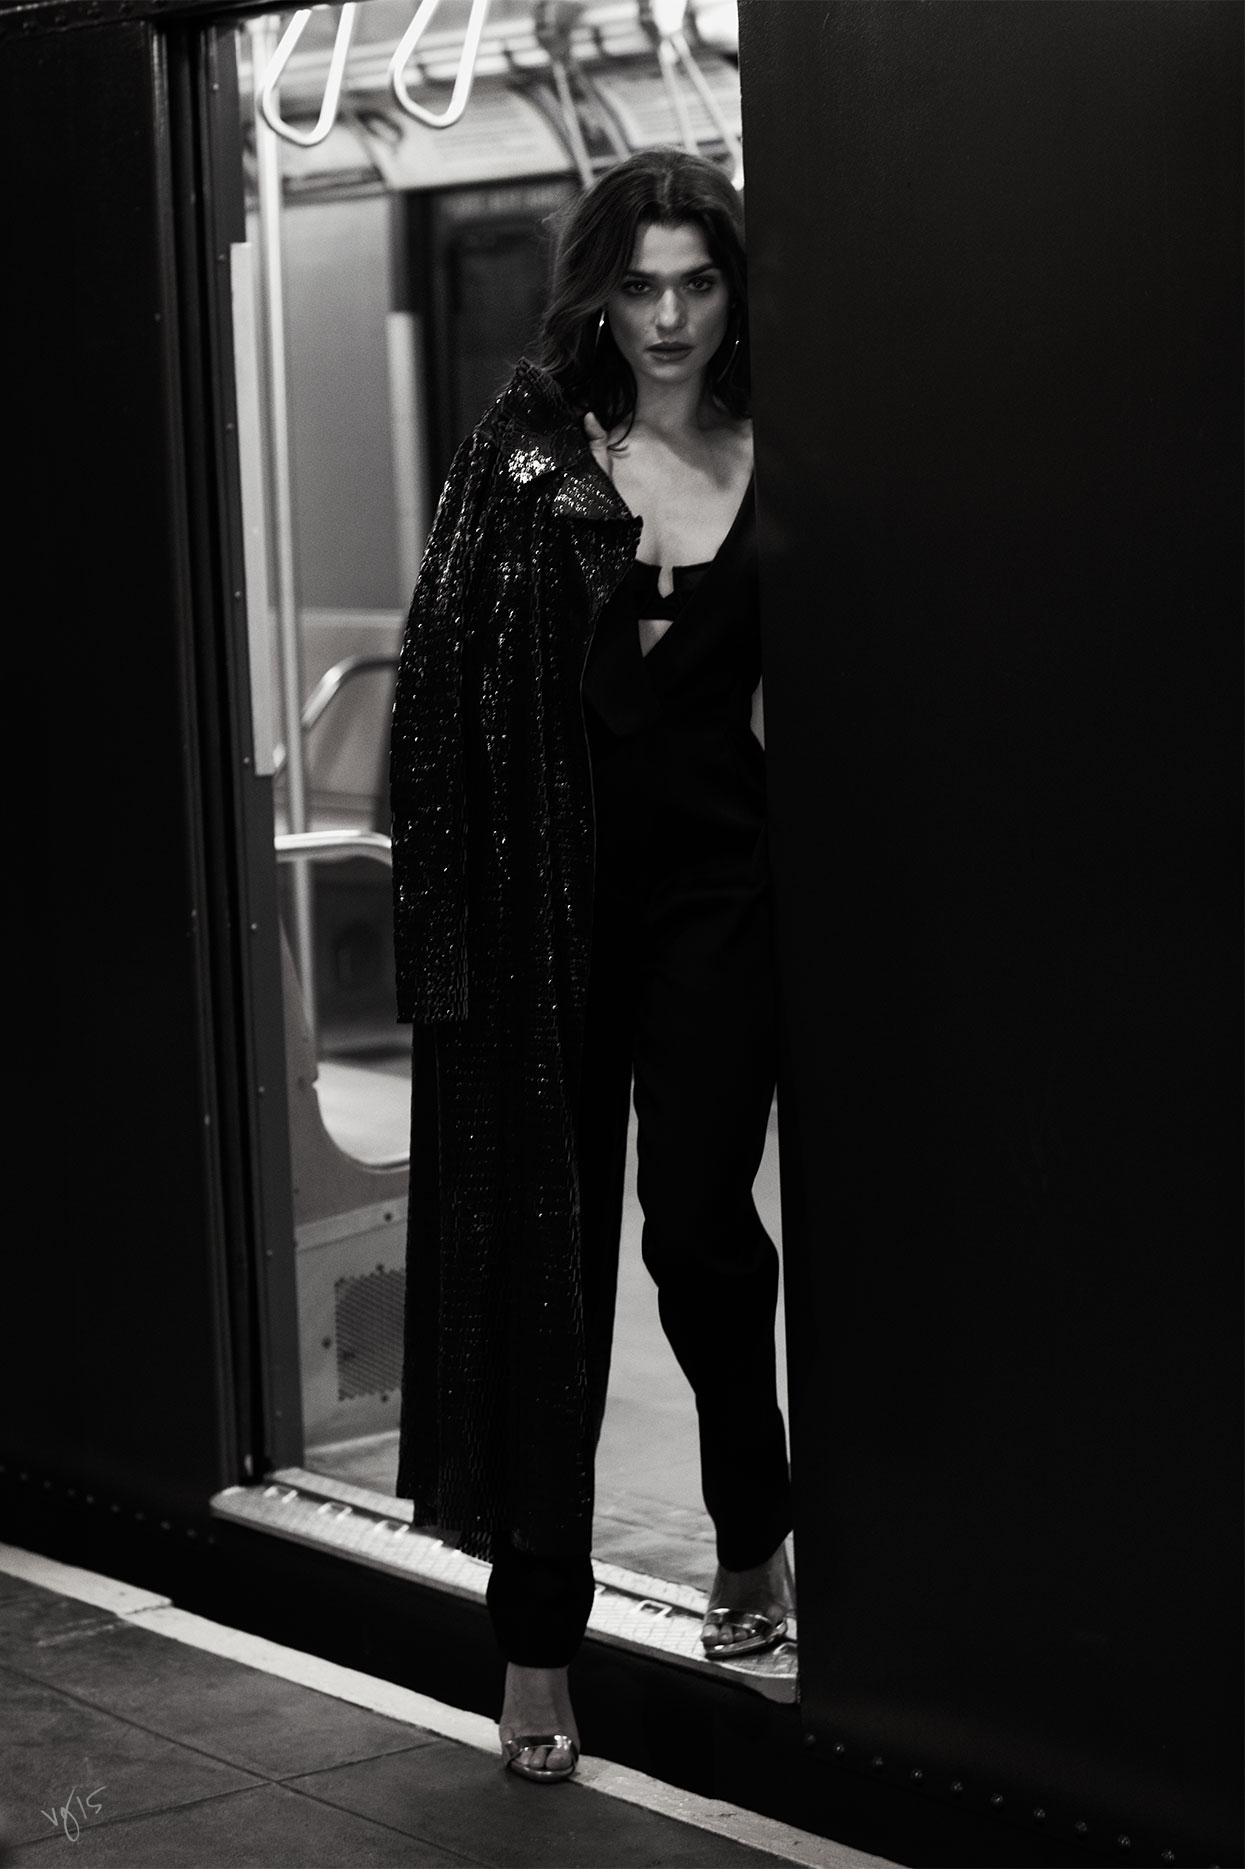 Rachel Weisz 2015 : Rachel Weisz: The Violet Files Photoshoot (December 2015)-04